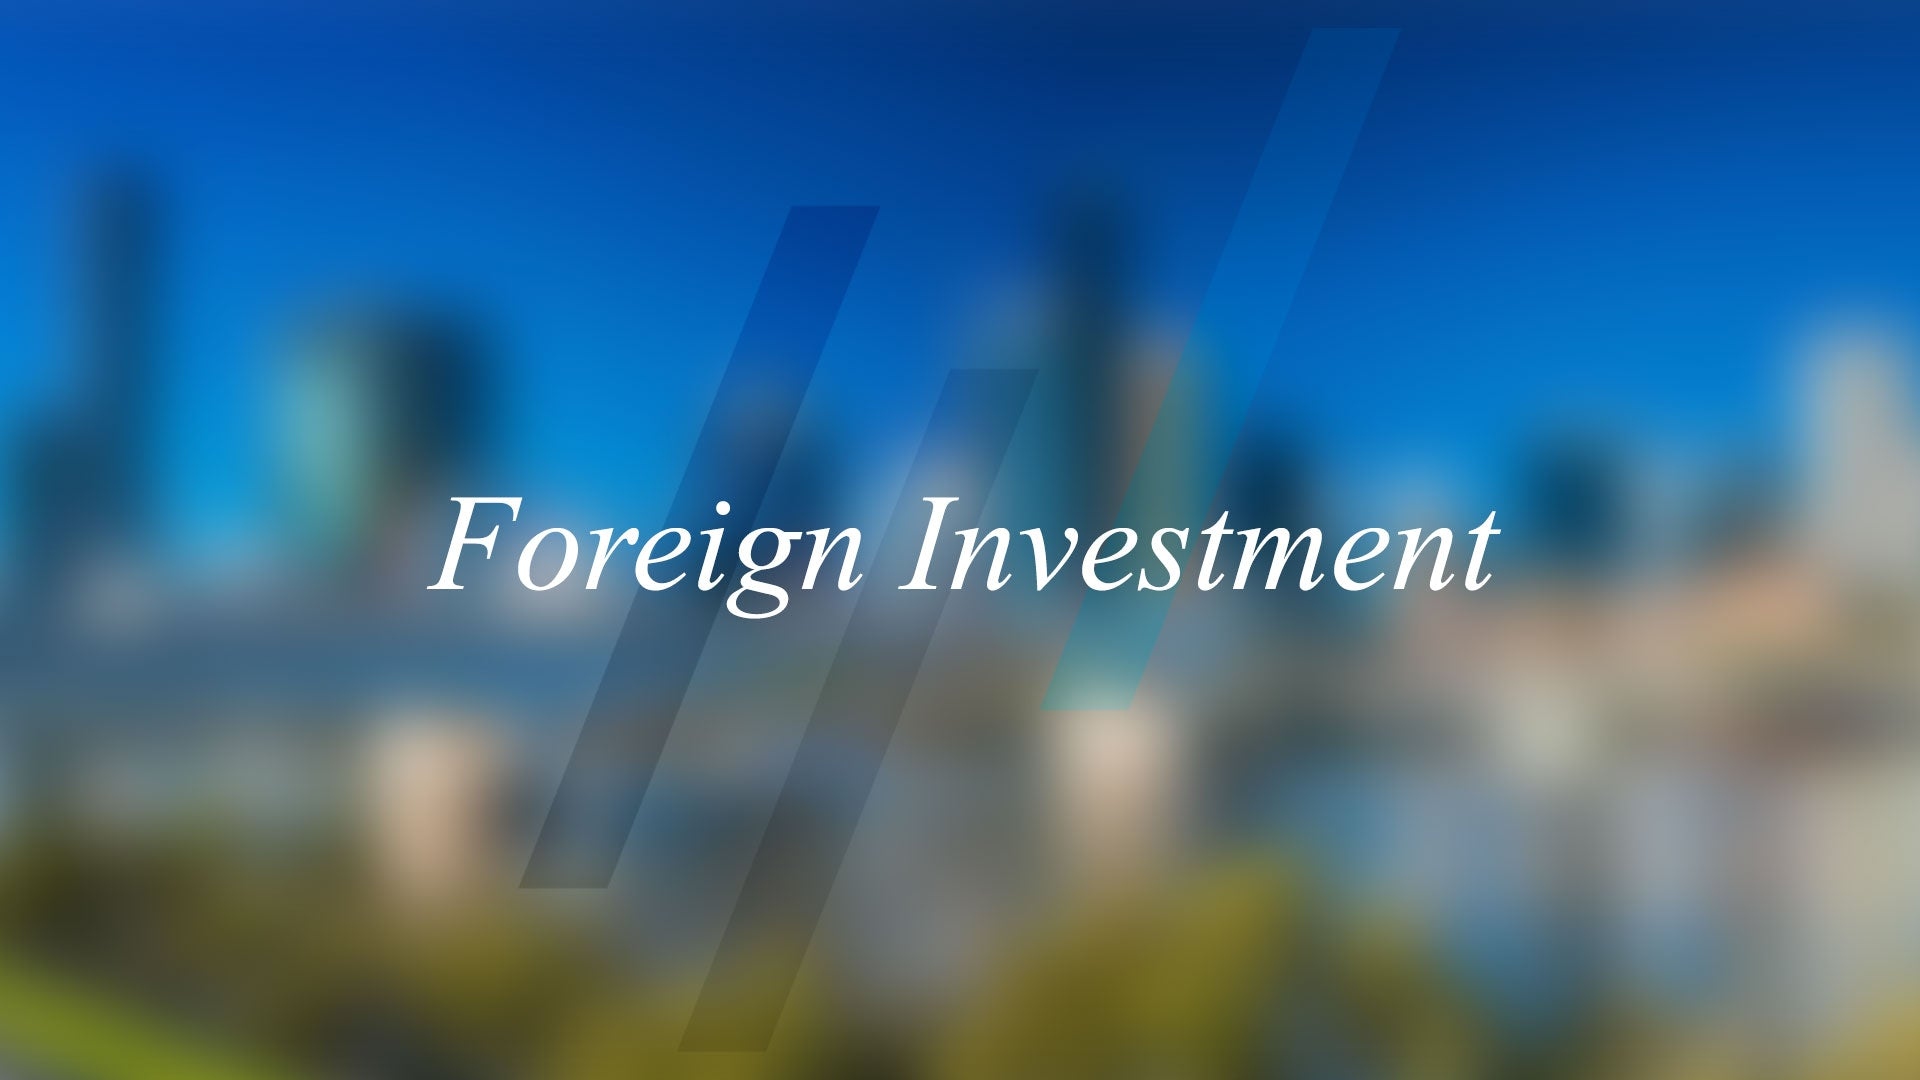 How does Foreign Investment affect the market?